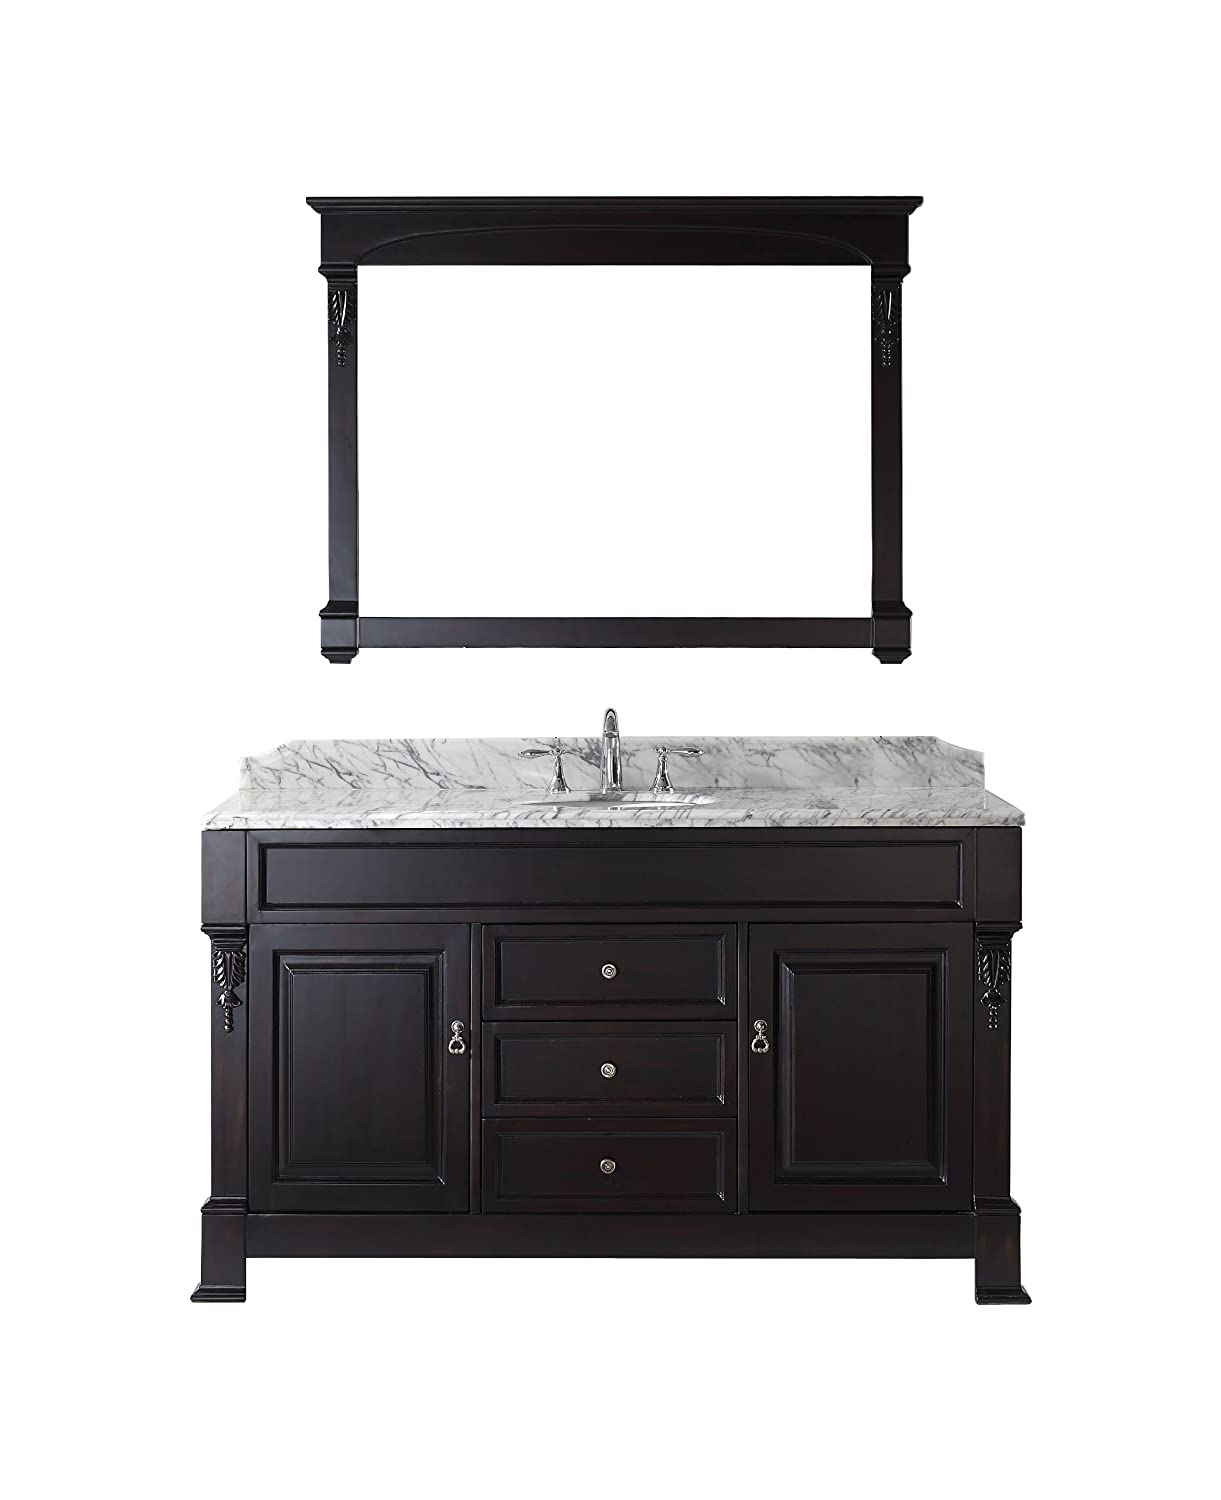 Virtu USA GS 4060 WMRO DW Huntshire 60 Inch Single Sink Bathroom Vanity  With Mirror And Ceramic Basin, Dark Walnut Finish     Amazon.com